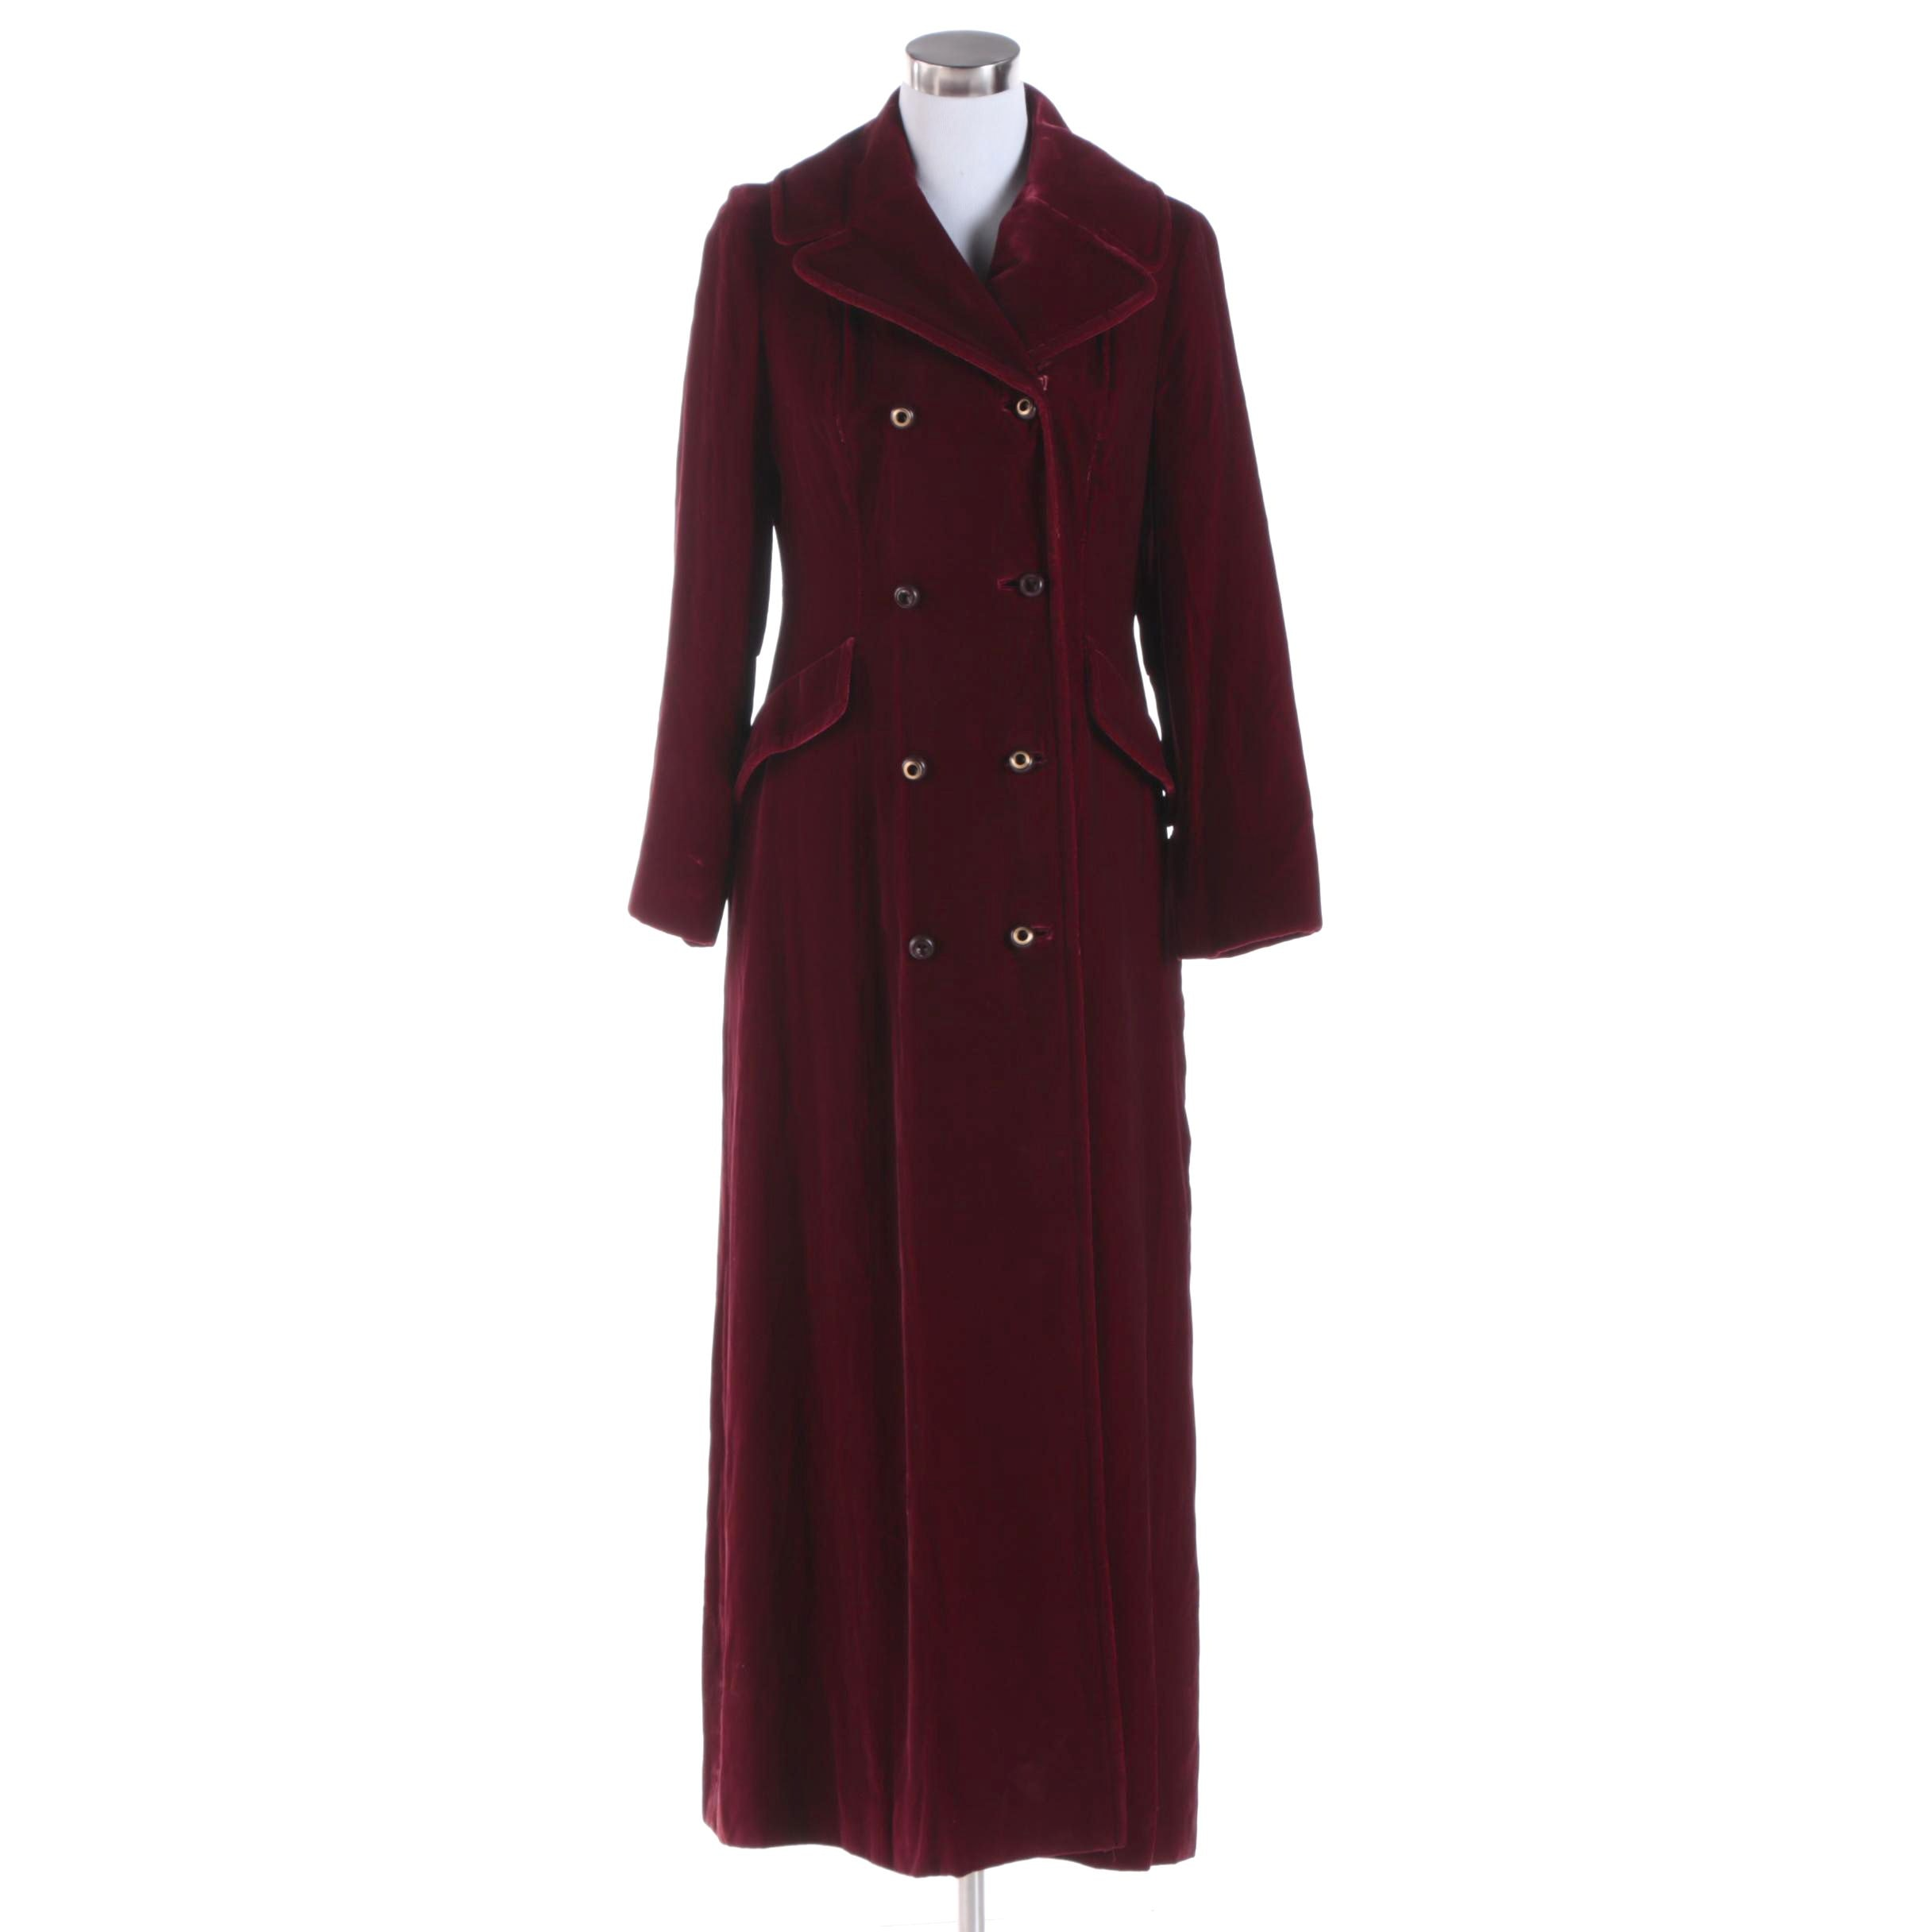 Women's Vintage Jacobson's Full-Length Maroon Velvet Coat